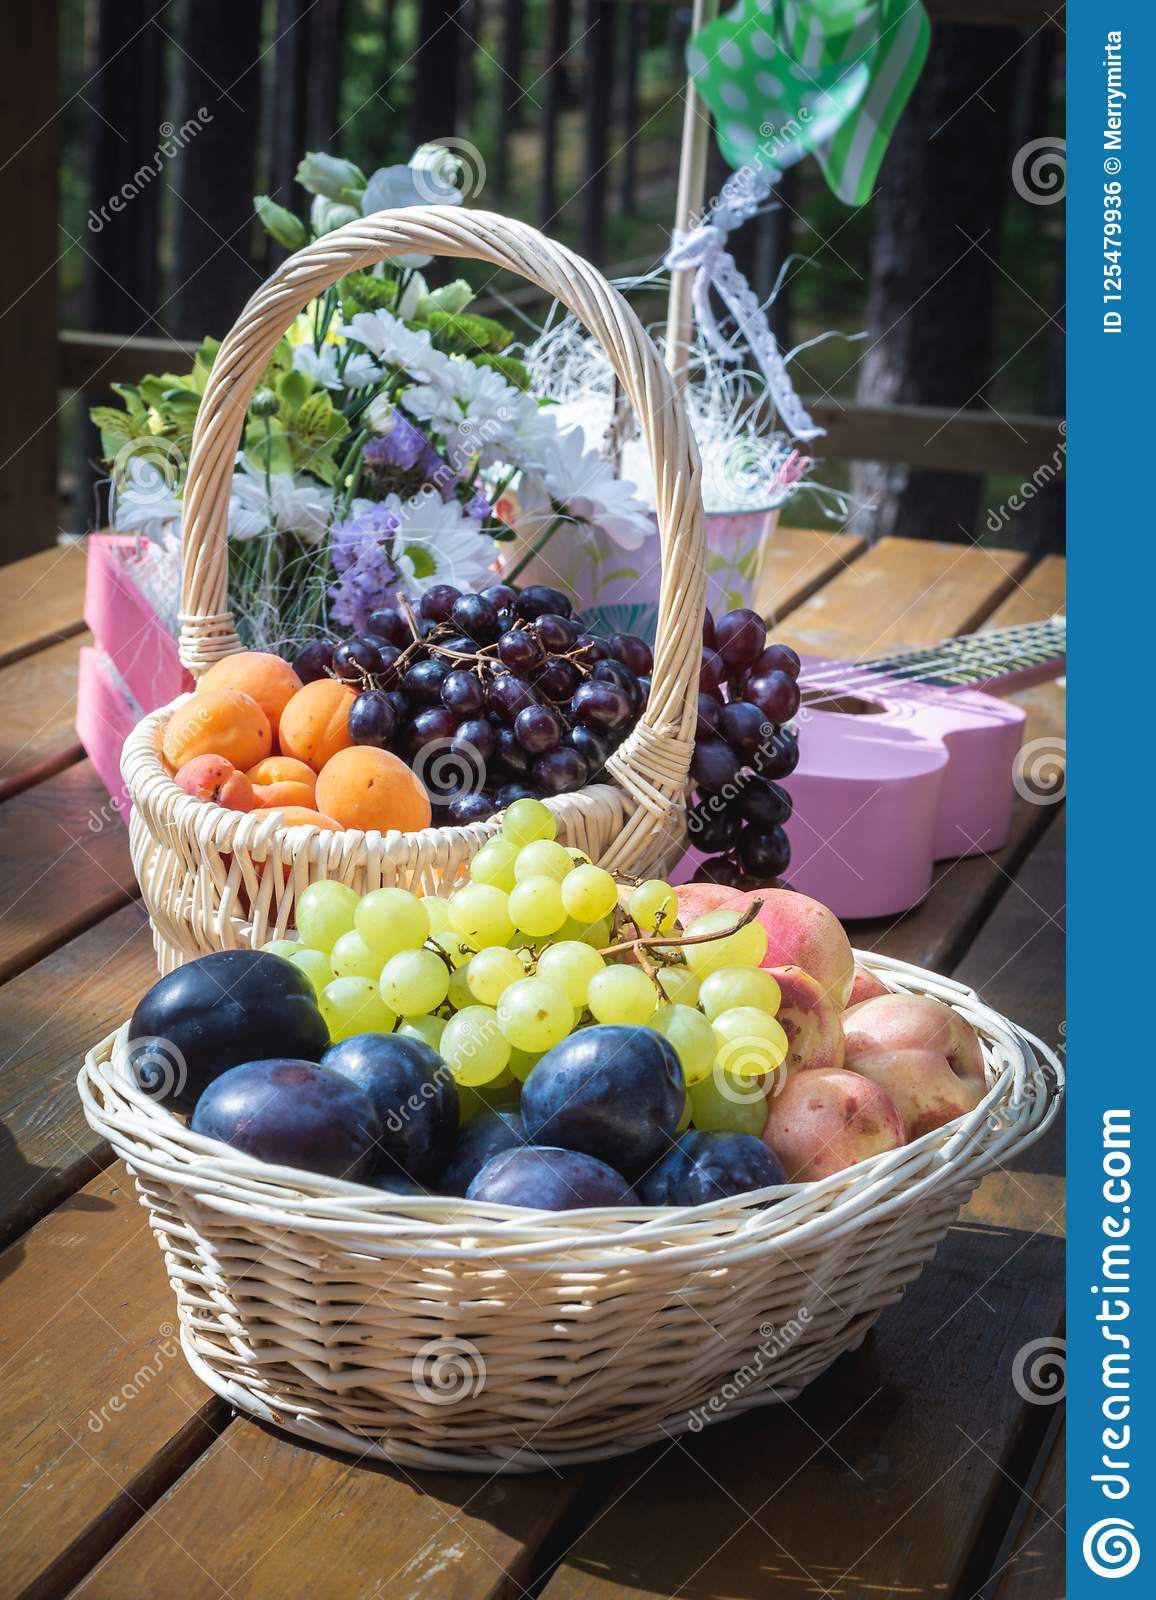 Picnic Party Table Decoration Baskets With Fruits On A Wooden Table Flowers Pink Small Guitar And Pinwheel Stock Photo Image Of Outdoors Occasion 125479936